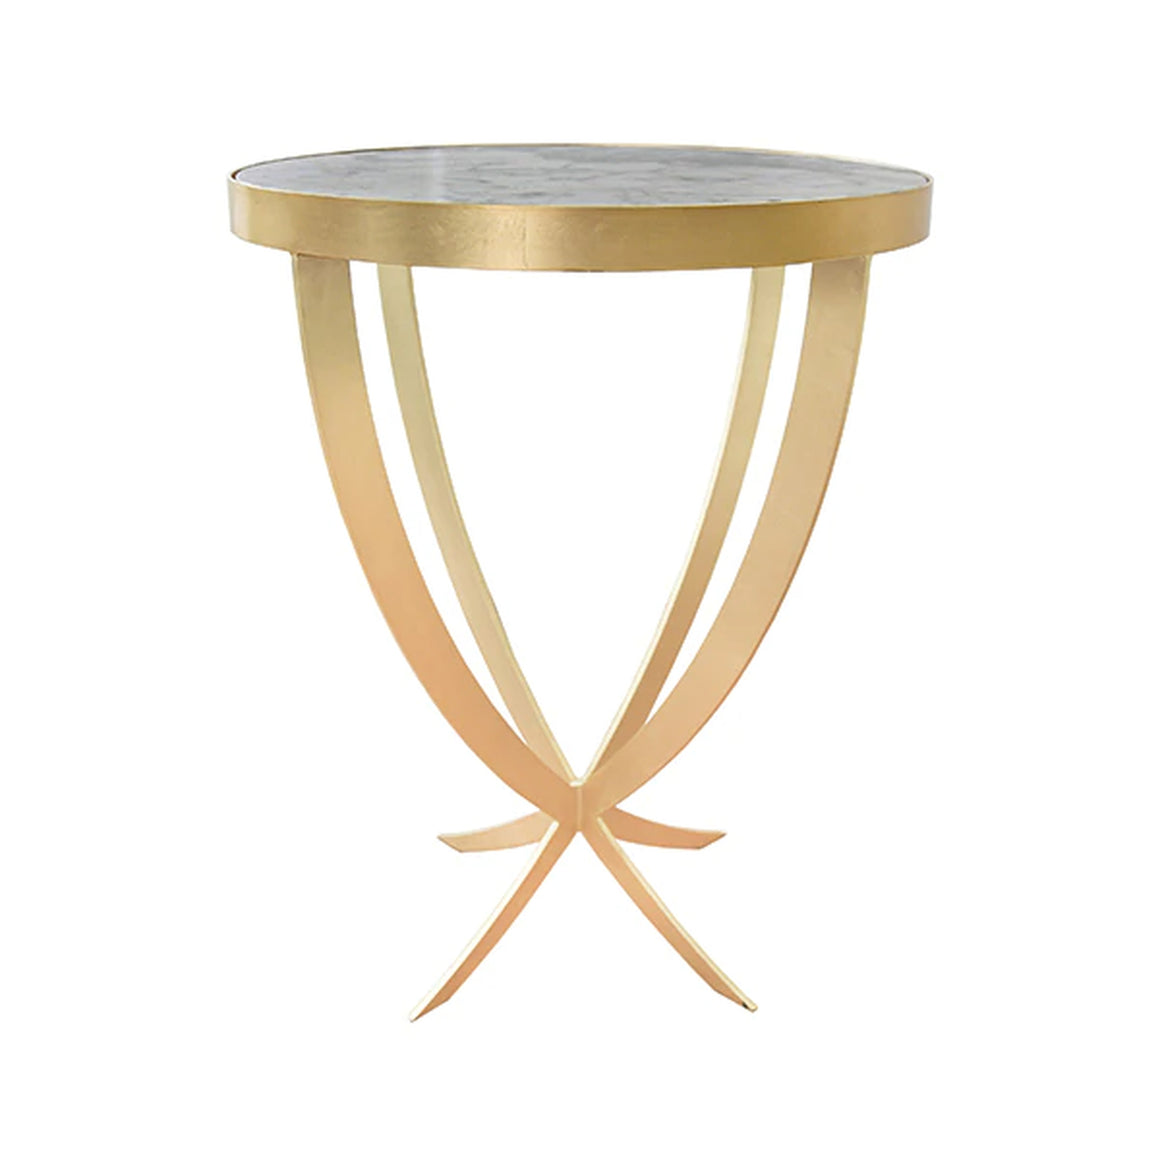 Worlds Away Round Marble Top Side Table - Gold Leaf